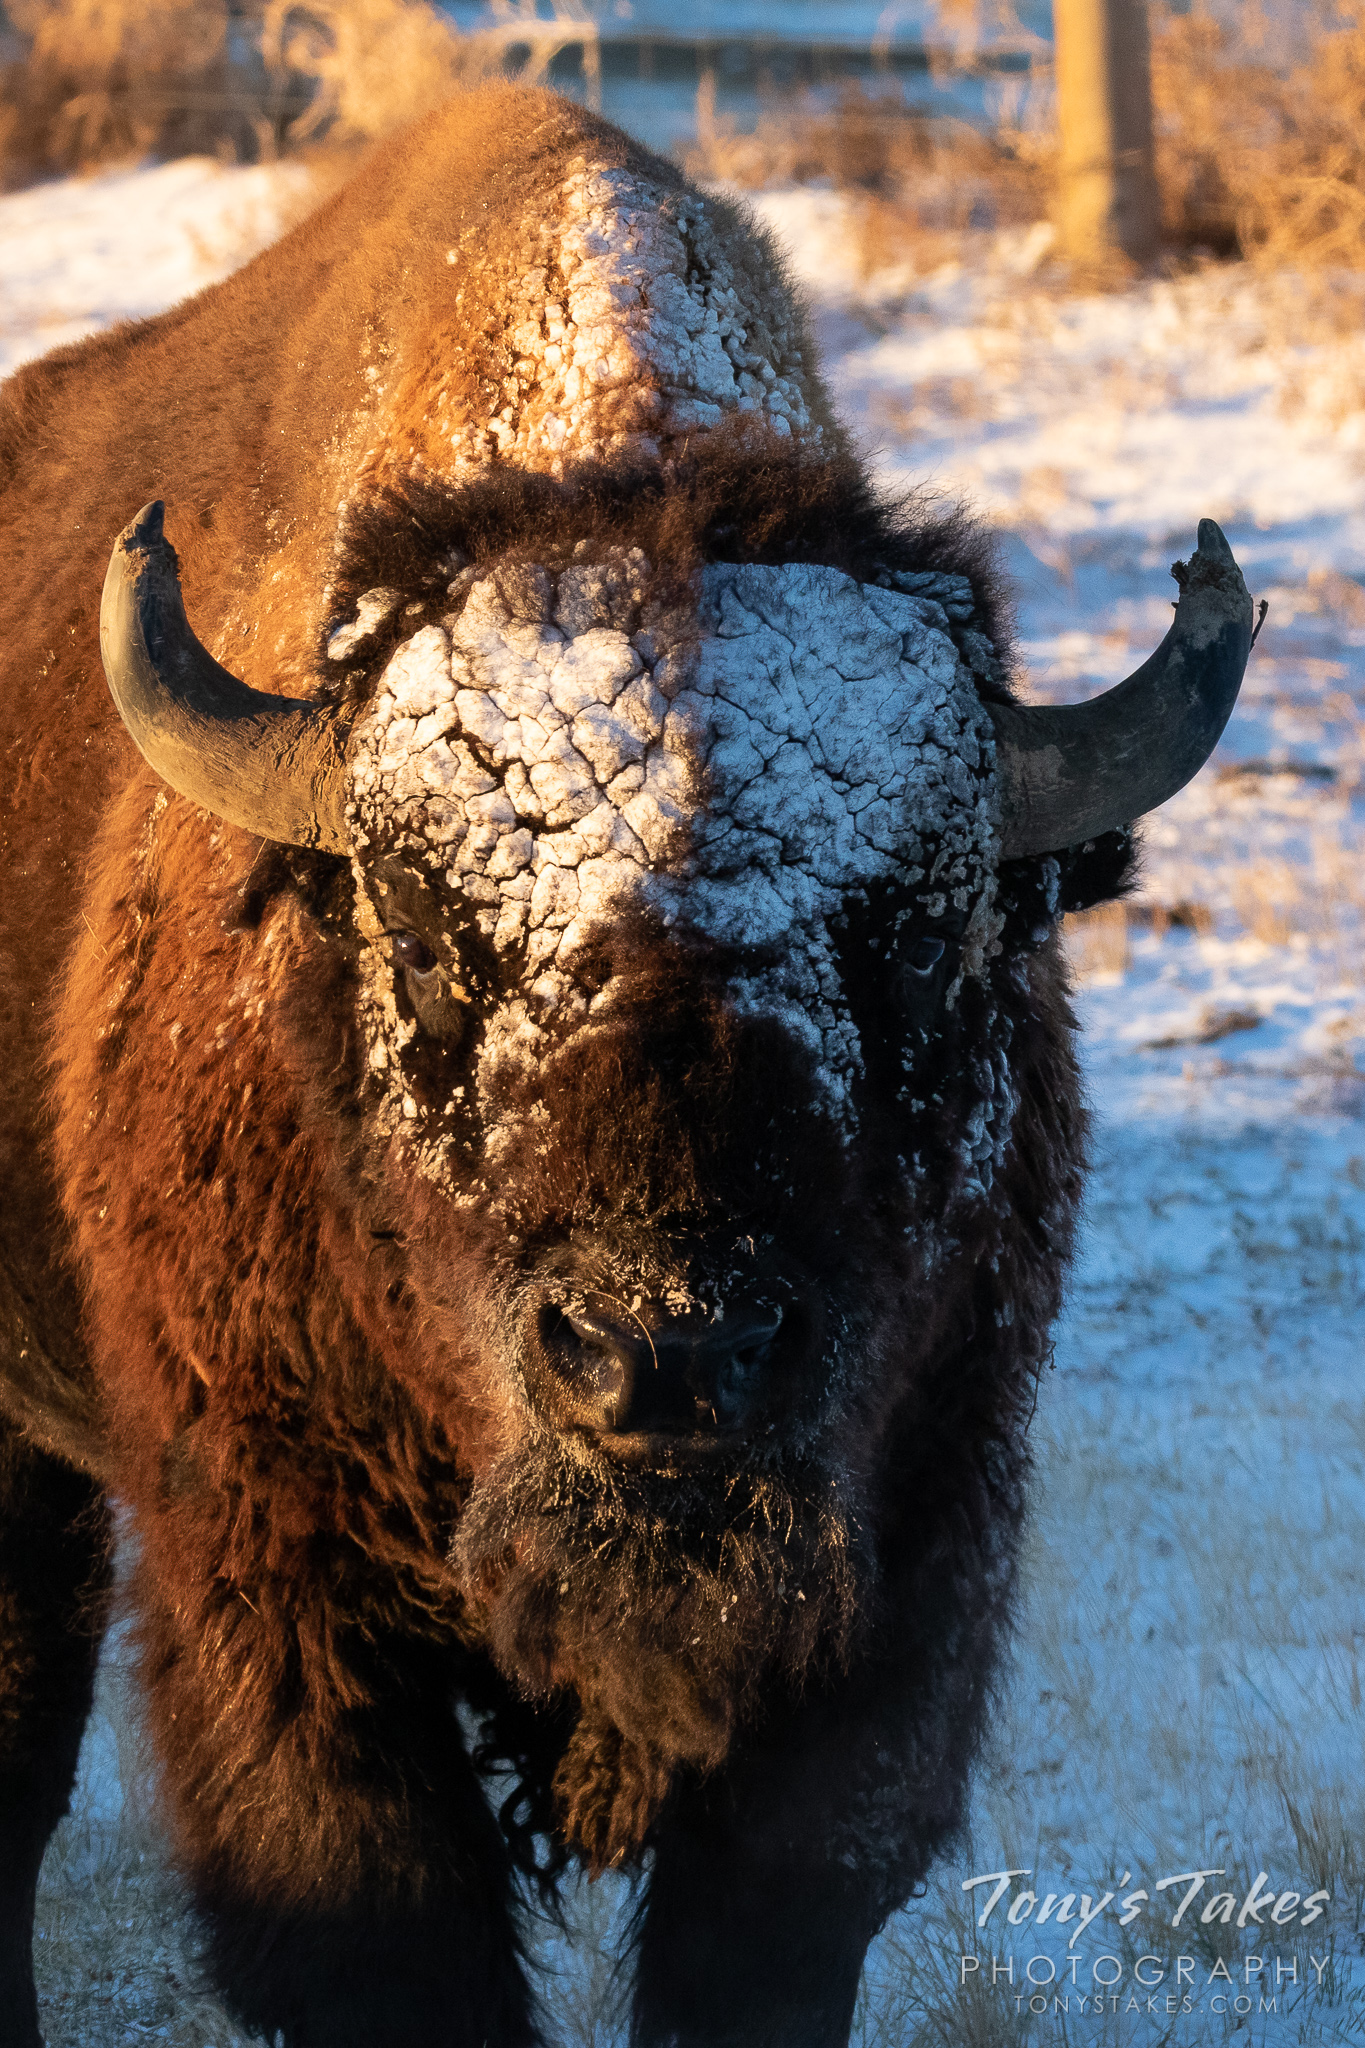 A Bison bull's face is caked in snow following a quick-moving storm in Colorado. (© Tony's Takes)